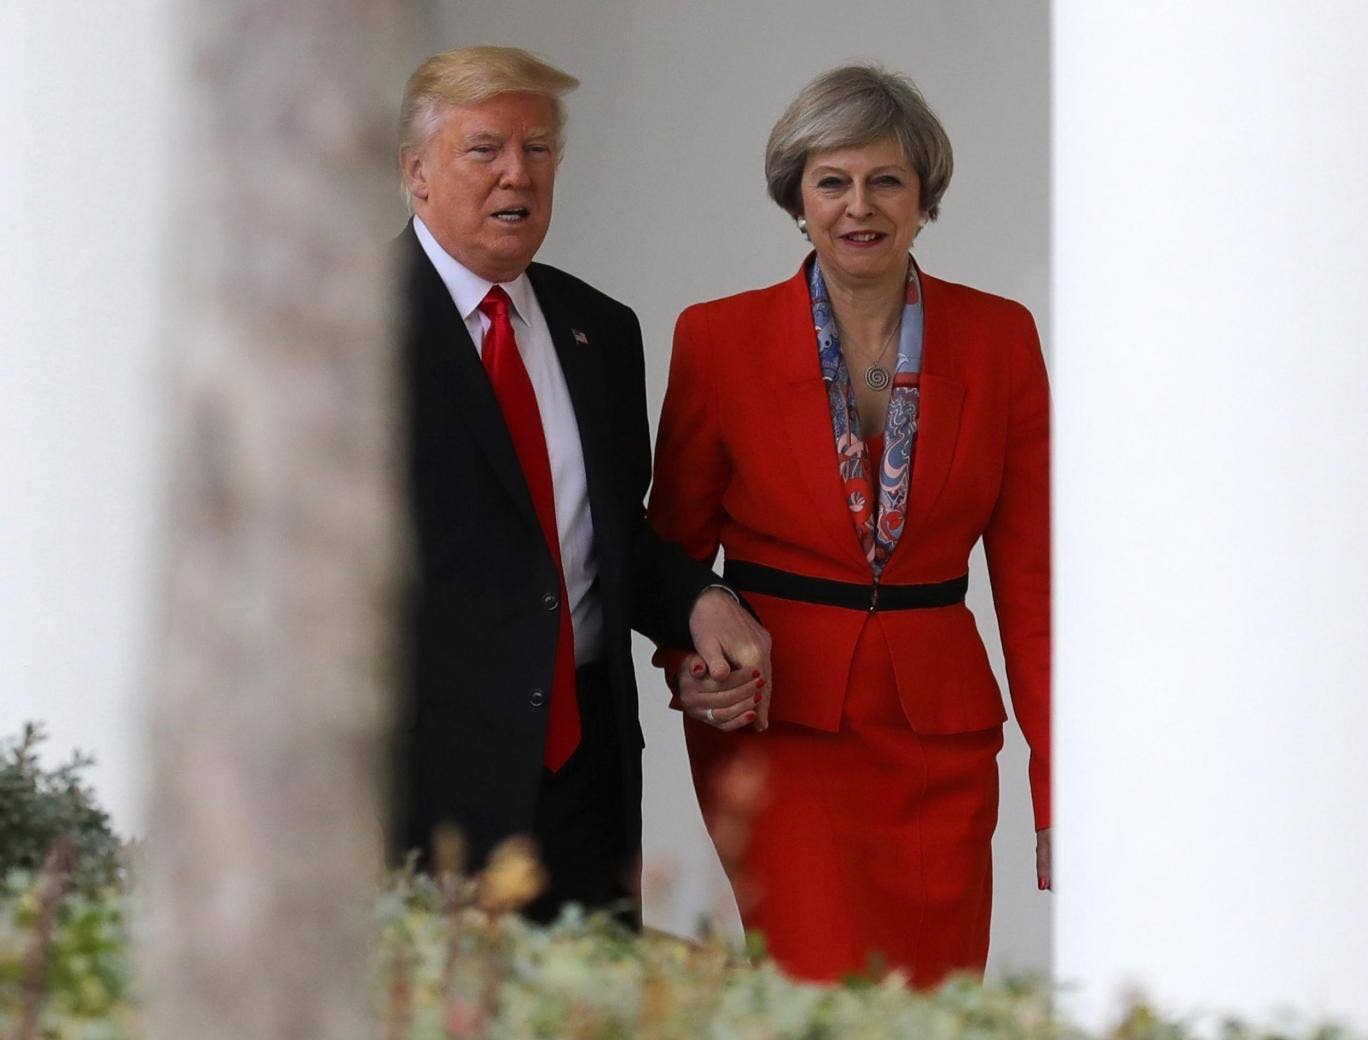 Queen Elizabeth Ii Urged By Uk Republicans To Abdicate On Sapphire Andrew Smith Grey Formal Trousers Abu 34 Man Who Started Viral Petition Wanted Save From Trump